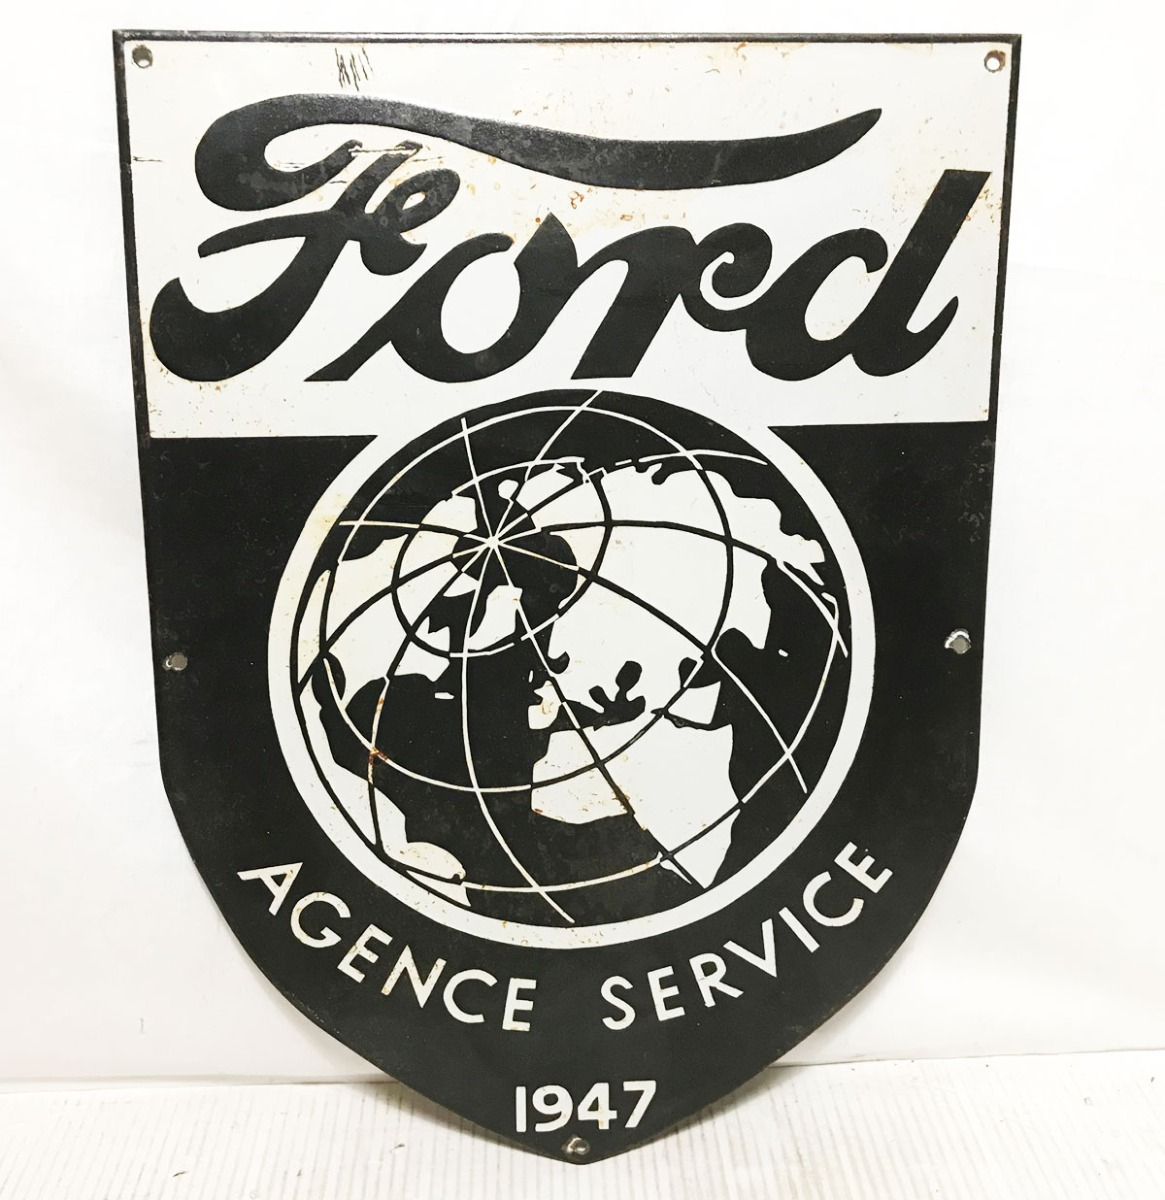 Ford Agence Service Emaille Bord - Vroege Replica